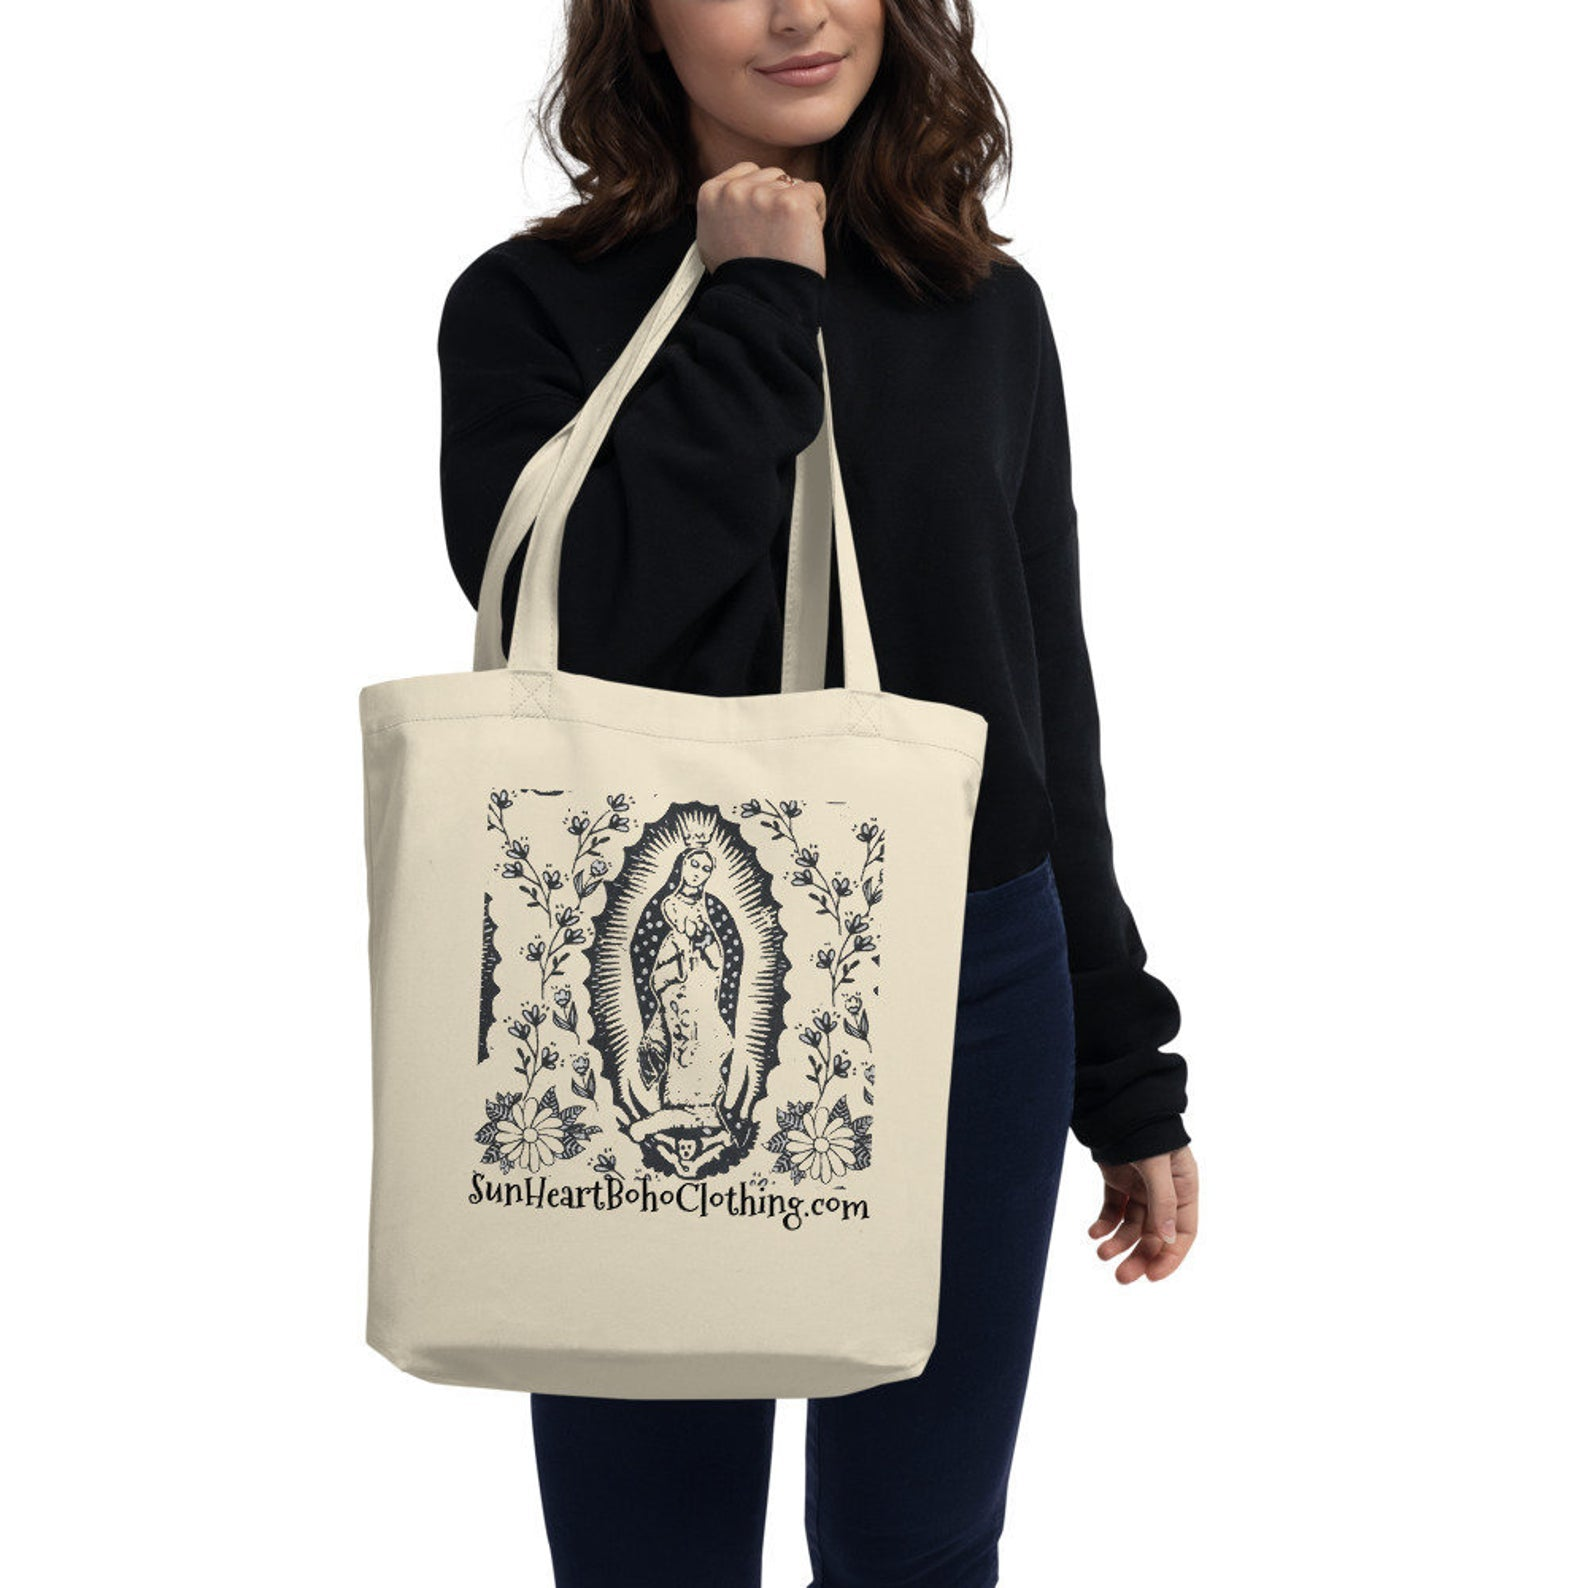 Sunheart Virgin of Guadalupe Tote Organic Cotton Religious Folk Art Book Bag